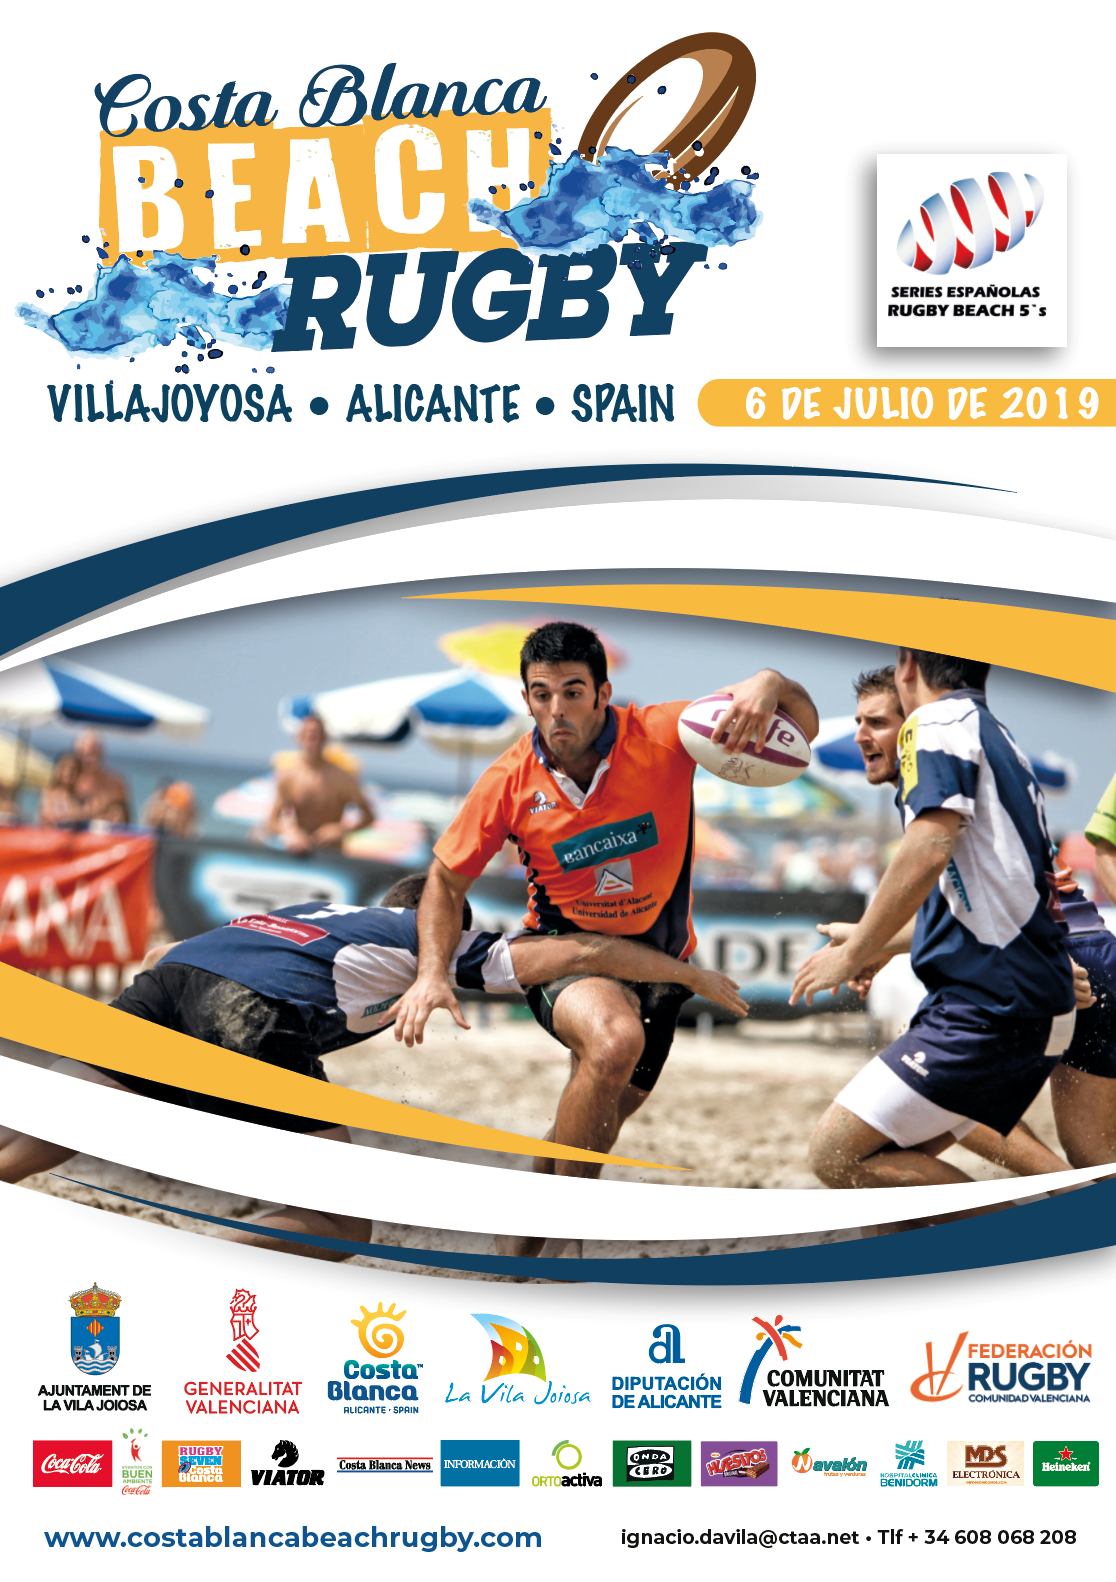 5TH BEACH RUGBY COSTA BLANCA